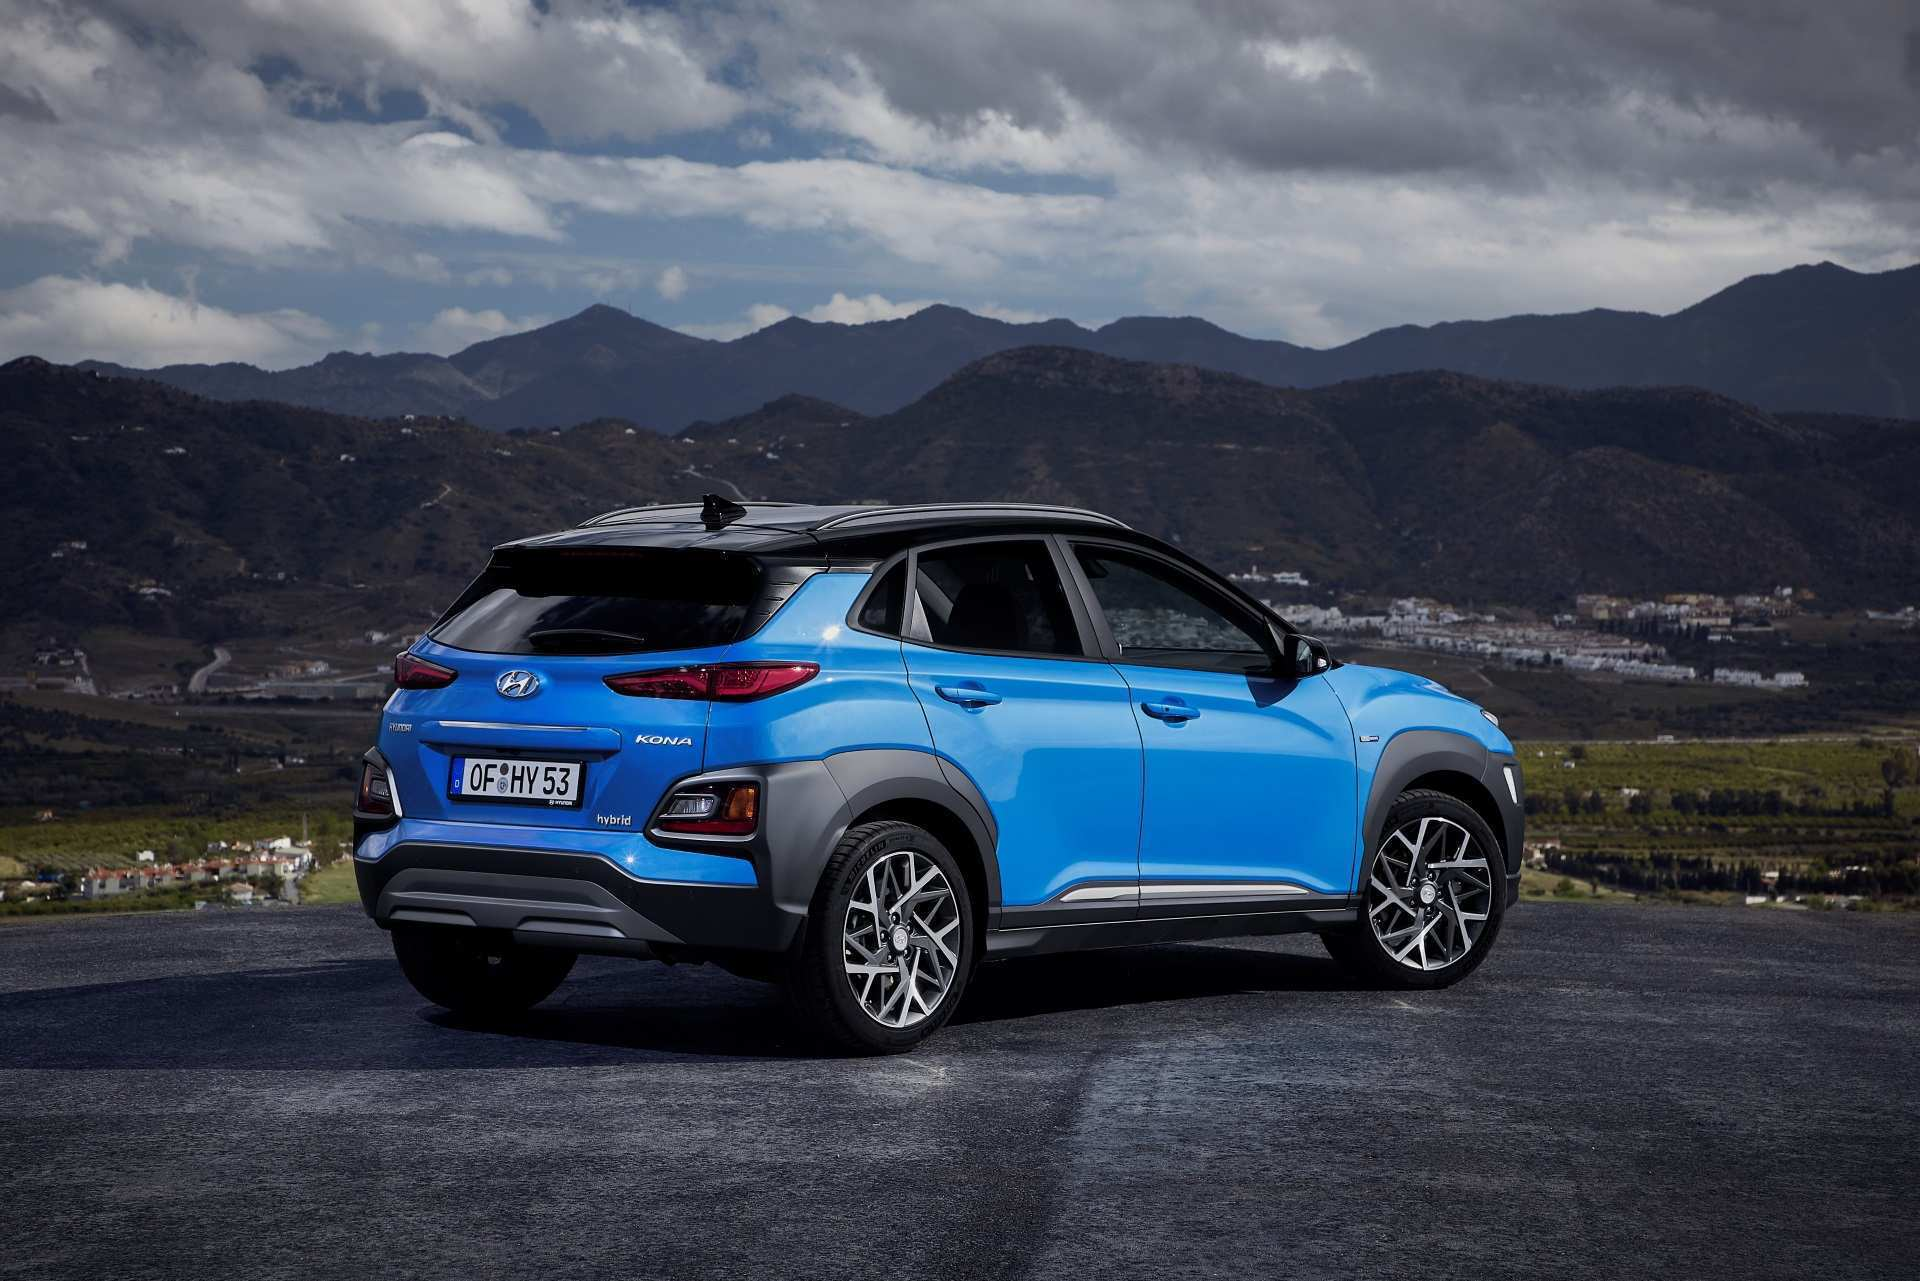 84 New When Does The 2020 Hyundai Kona Come Out Price And Release Date